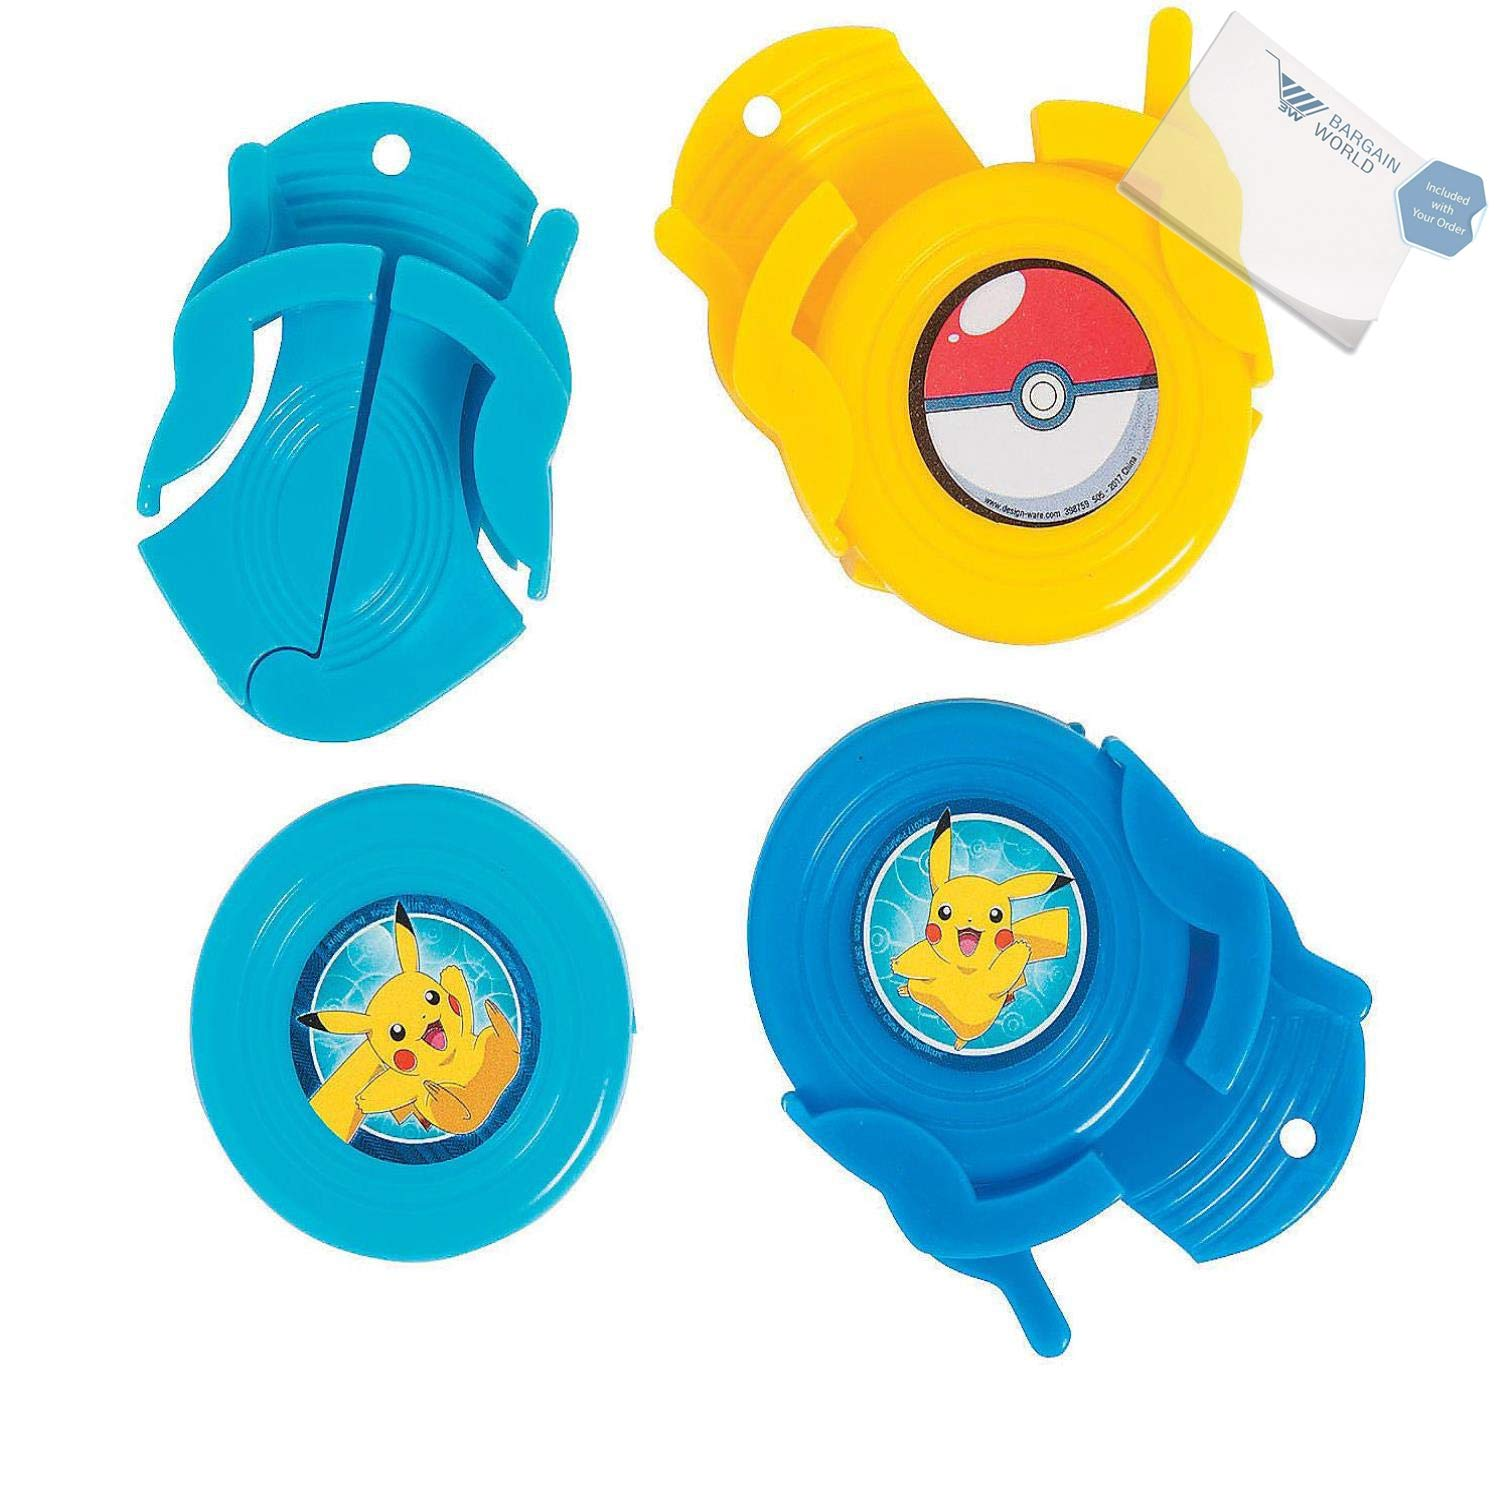 Bargain World Plastic Pikachu & Friends Disc Shooters (With Sticky Notes) by Bargain World (Image #1)